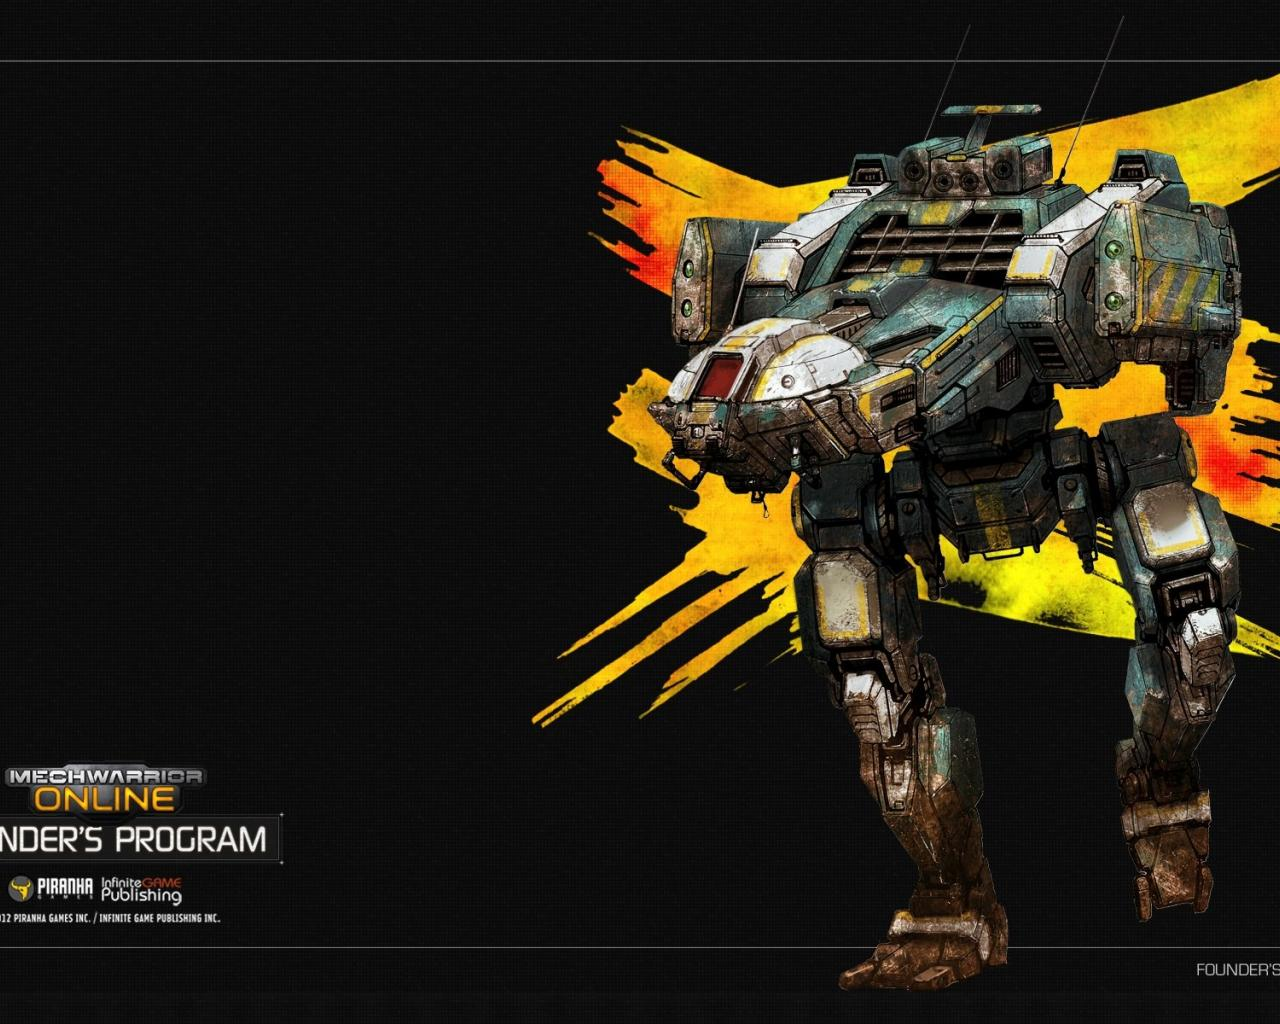 Mechwarrior online wallpaper 1920x1200 HQ WALLPAPER   35154 1280x1024